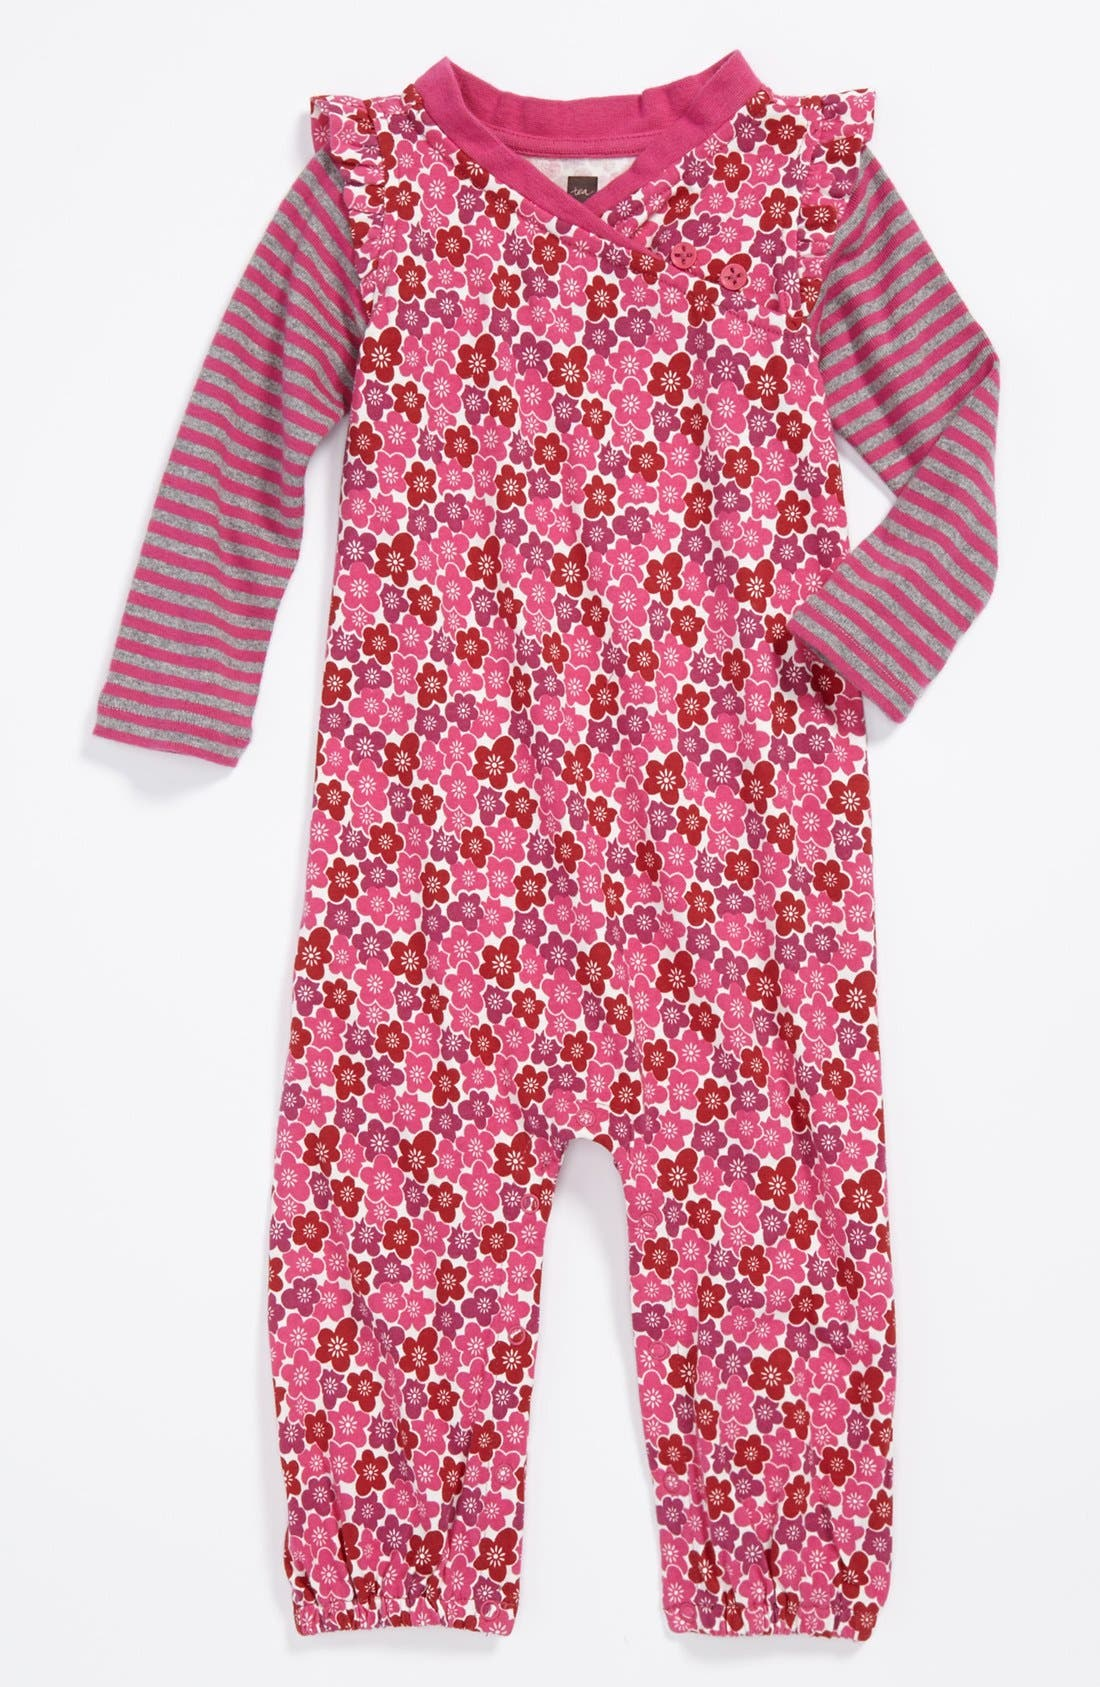 Alternate Image 1 Selected - Tea Collection 'Blossom' Coveralls (Baby Girls)